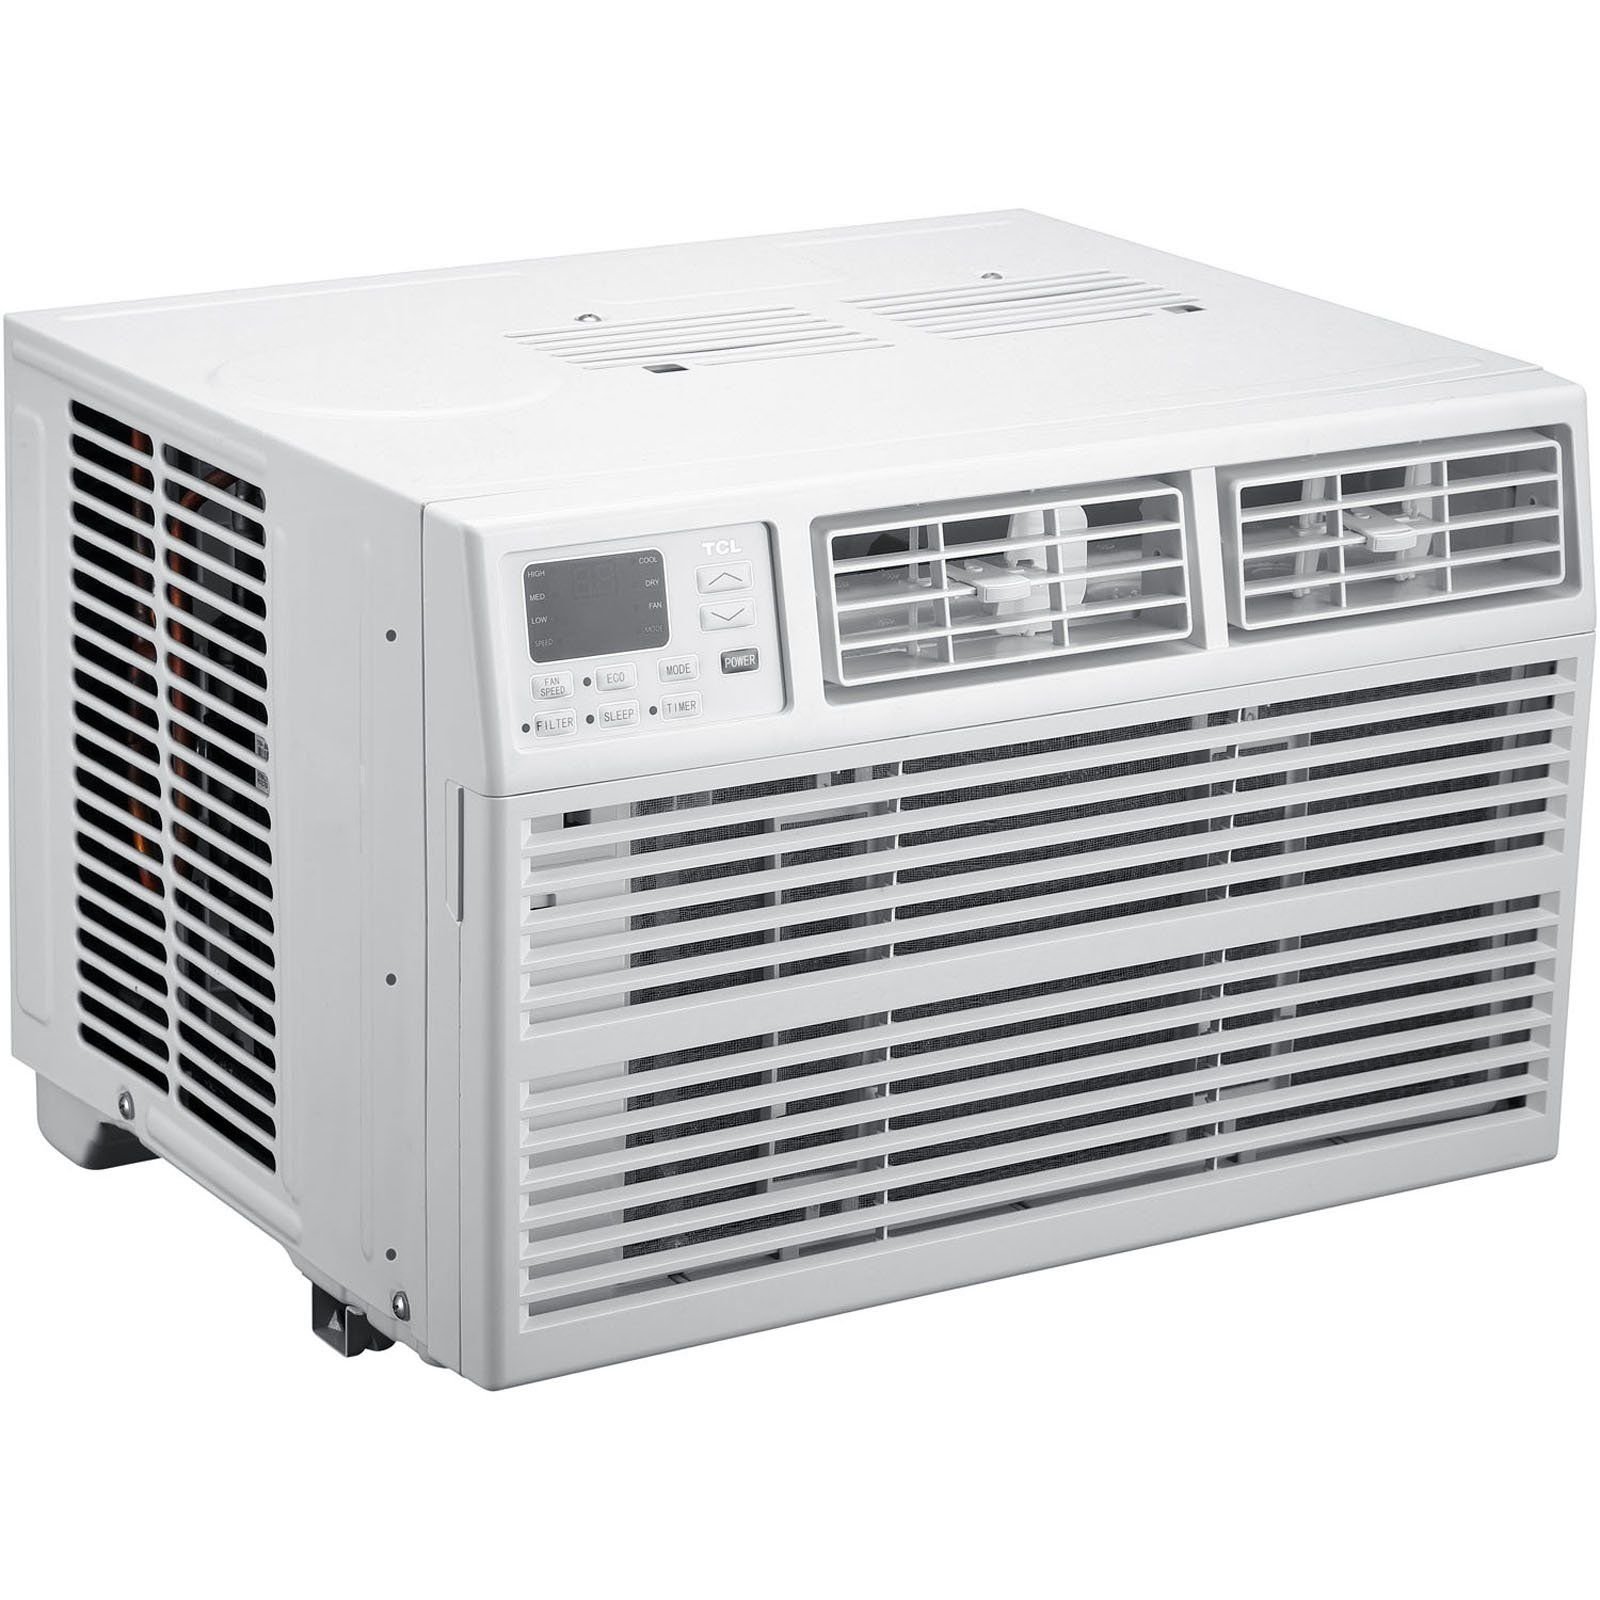 Tcl Energy Star 18000 Btu 230v Window Mounted Air Conditioner With Remote Control Window Air Conditioner Home Comforts Energy Star